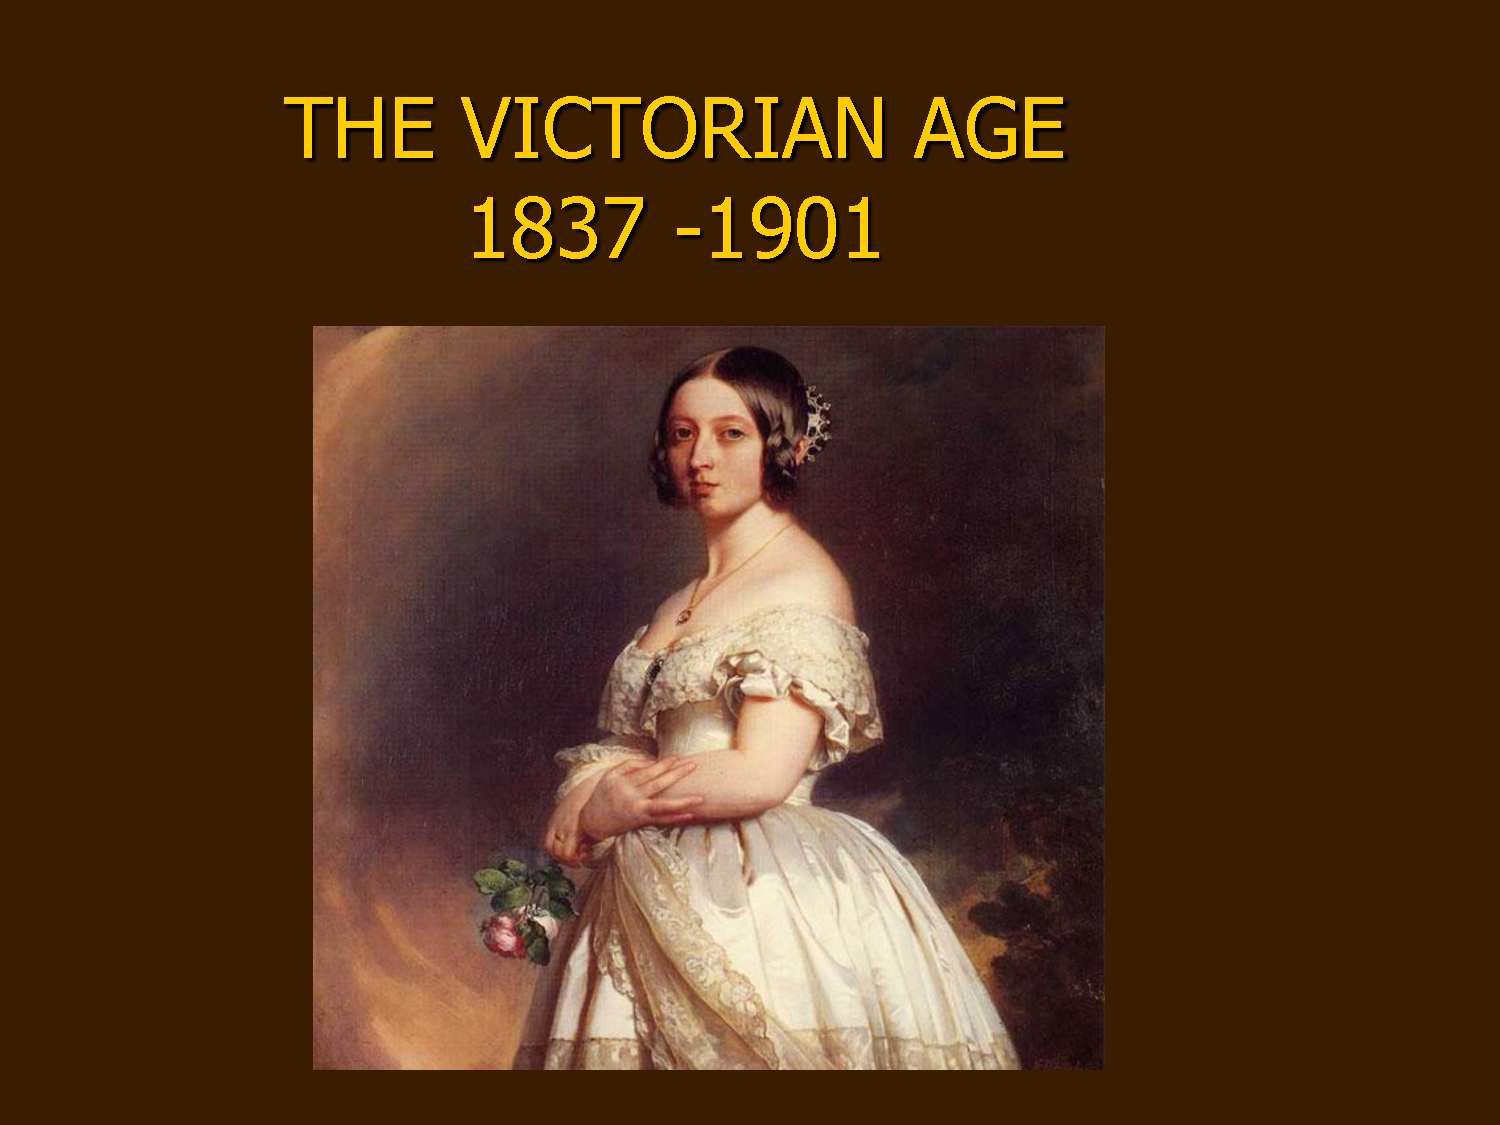 victorian period writers Chief characteristics of victorian period after the high tragedies of greece, the form was developed and used in the elizabeth era by writers like shakespeare.